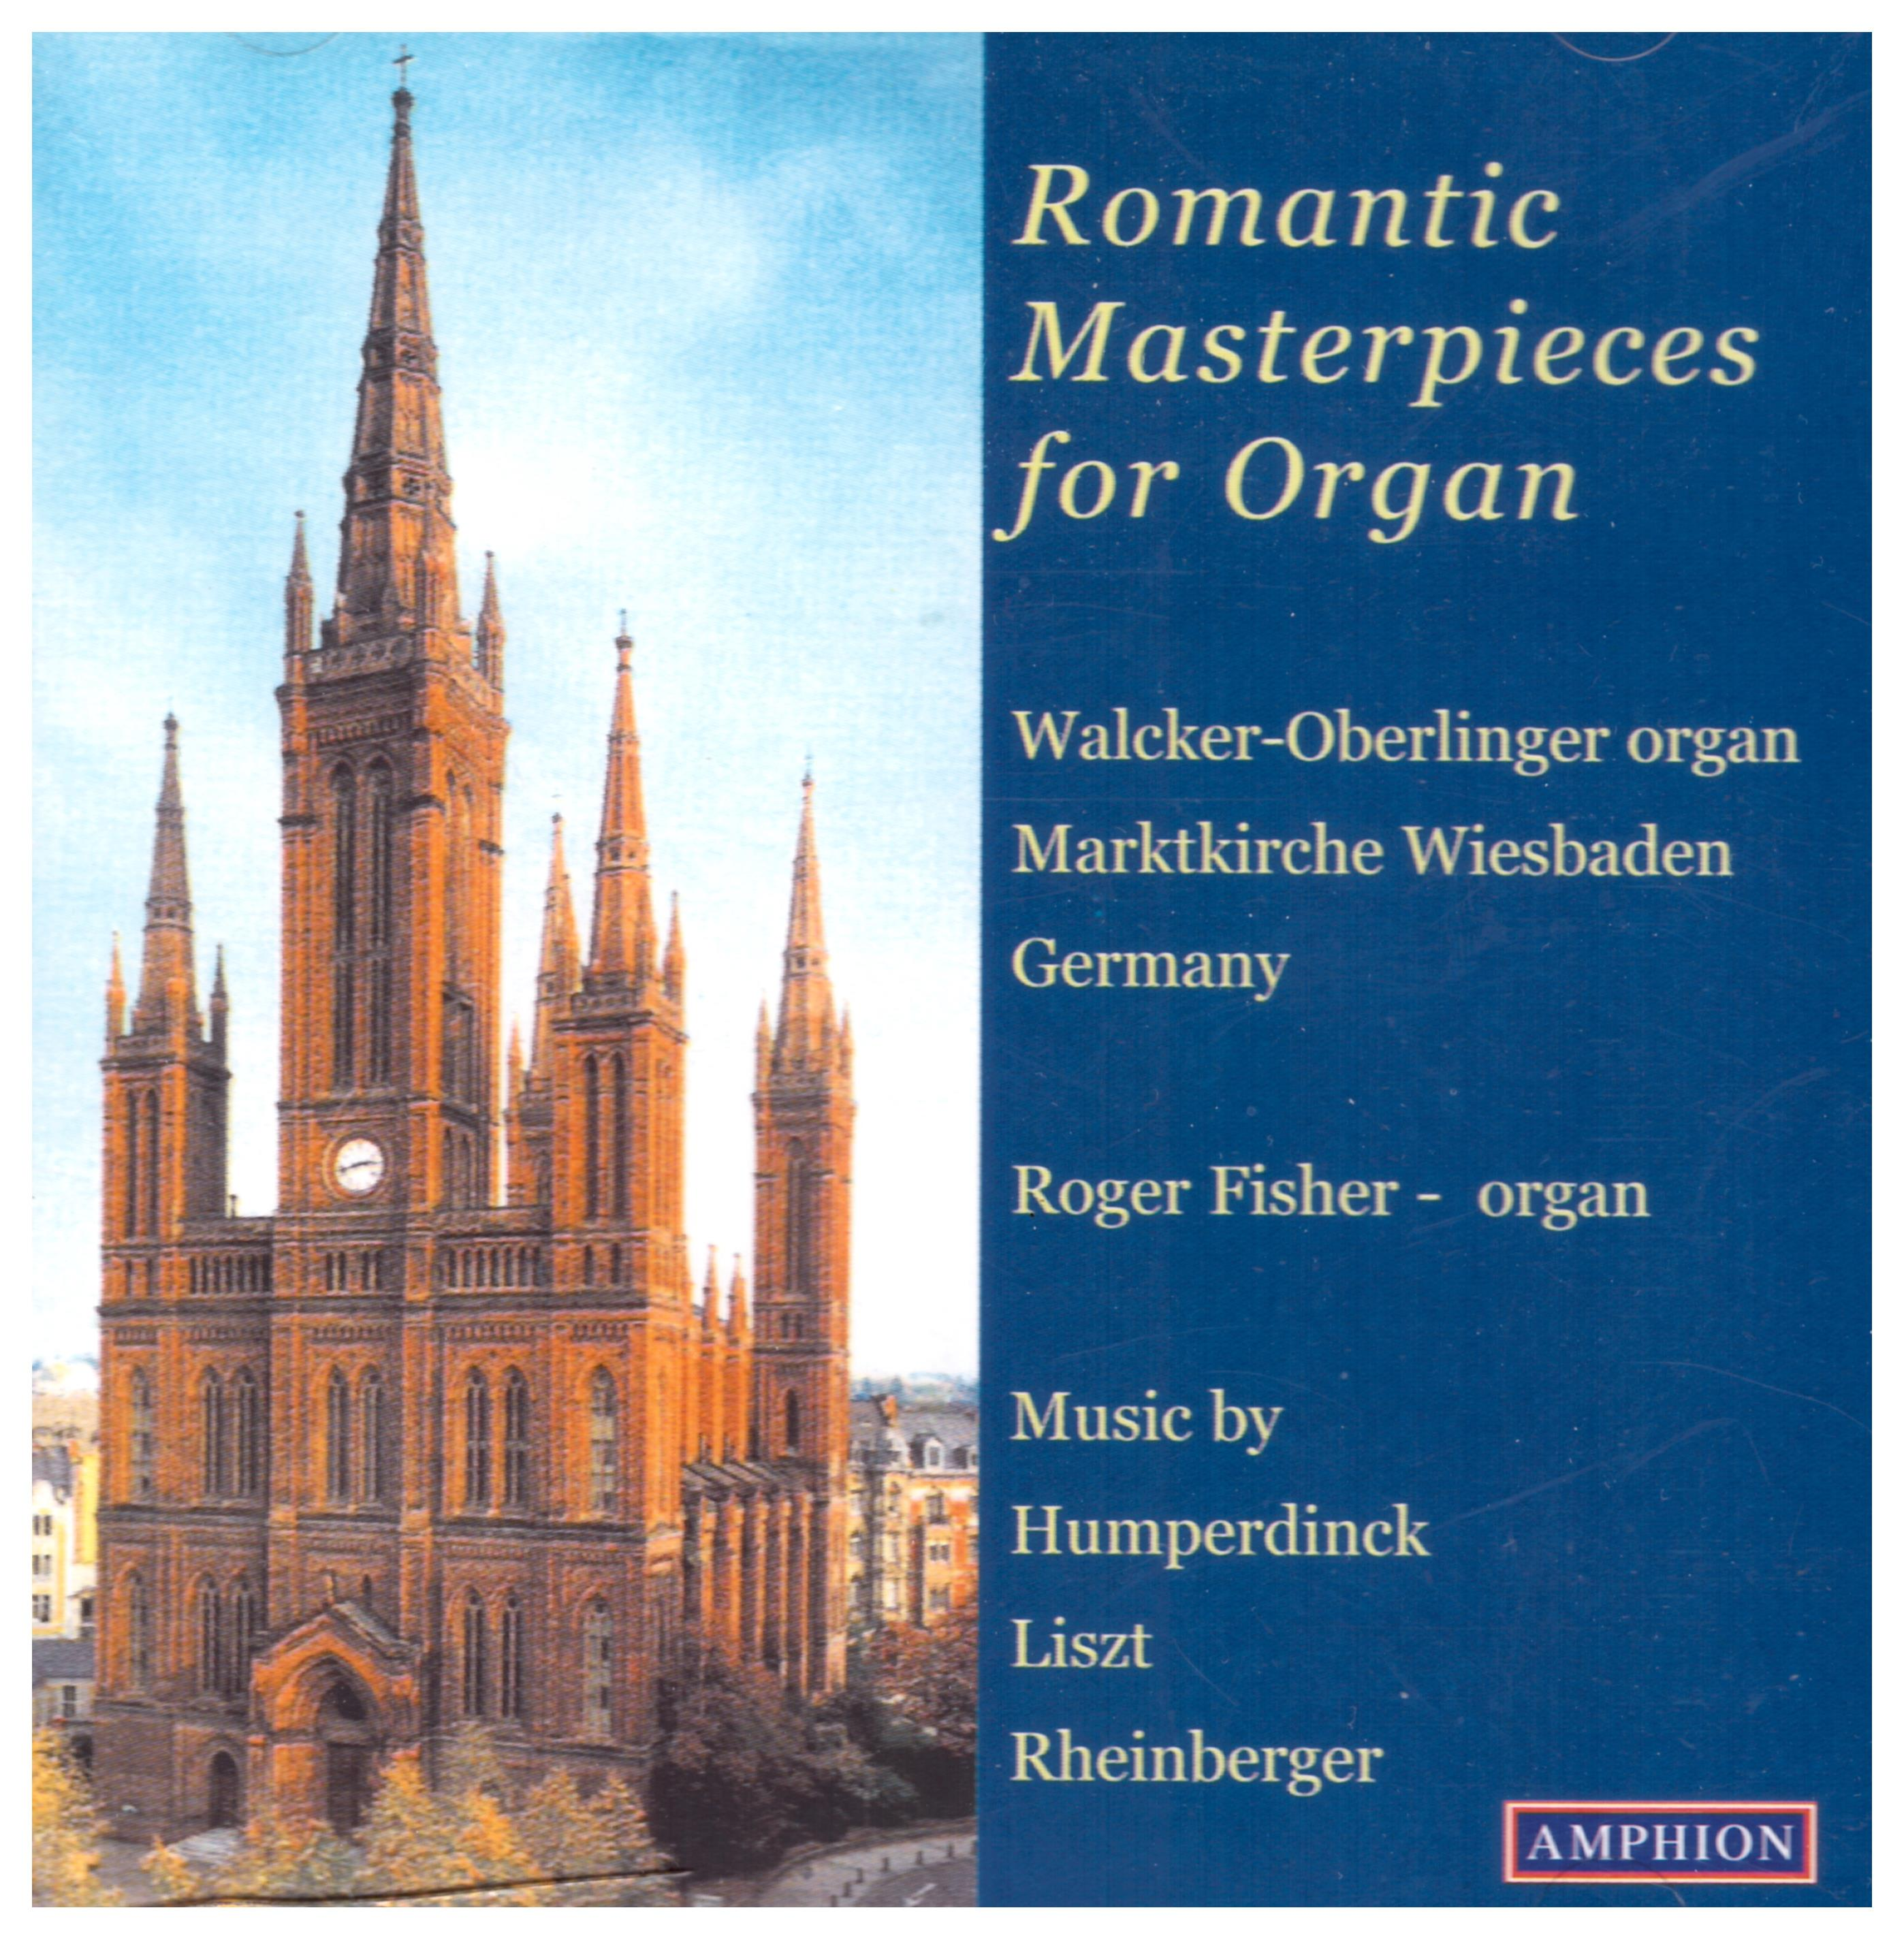 Romantic Masterpieces for Organ